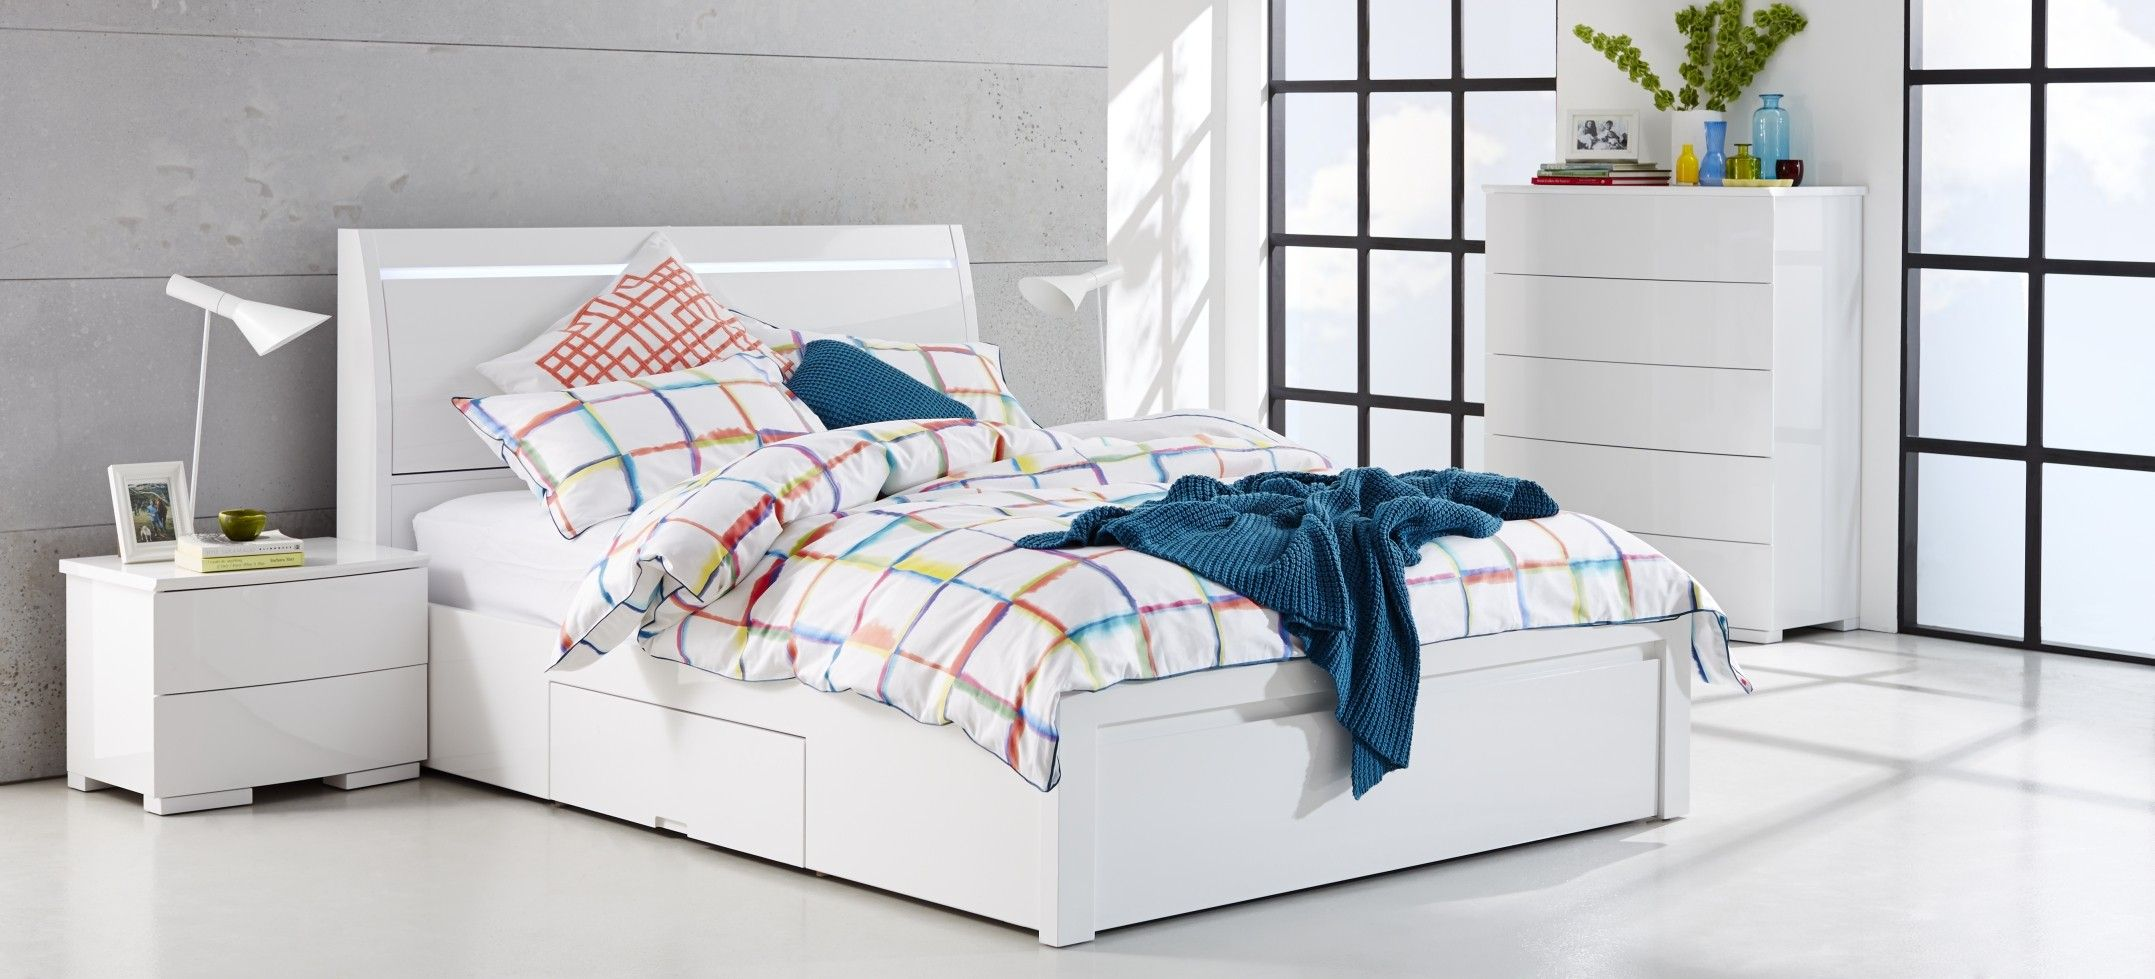 Chicago White Gloss Bedroom Furniture Suite with multi-coloured ...